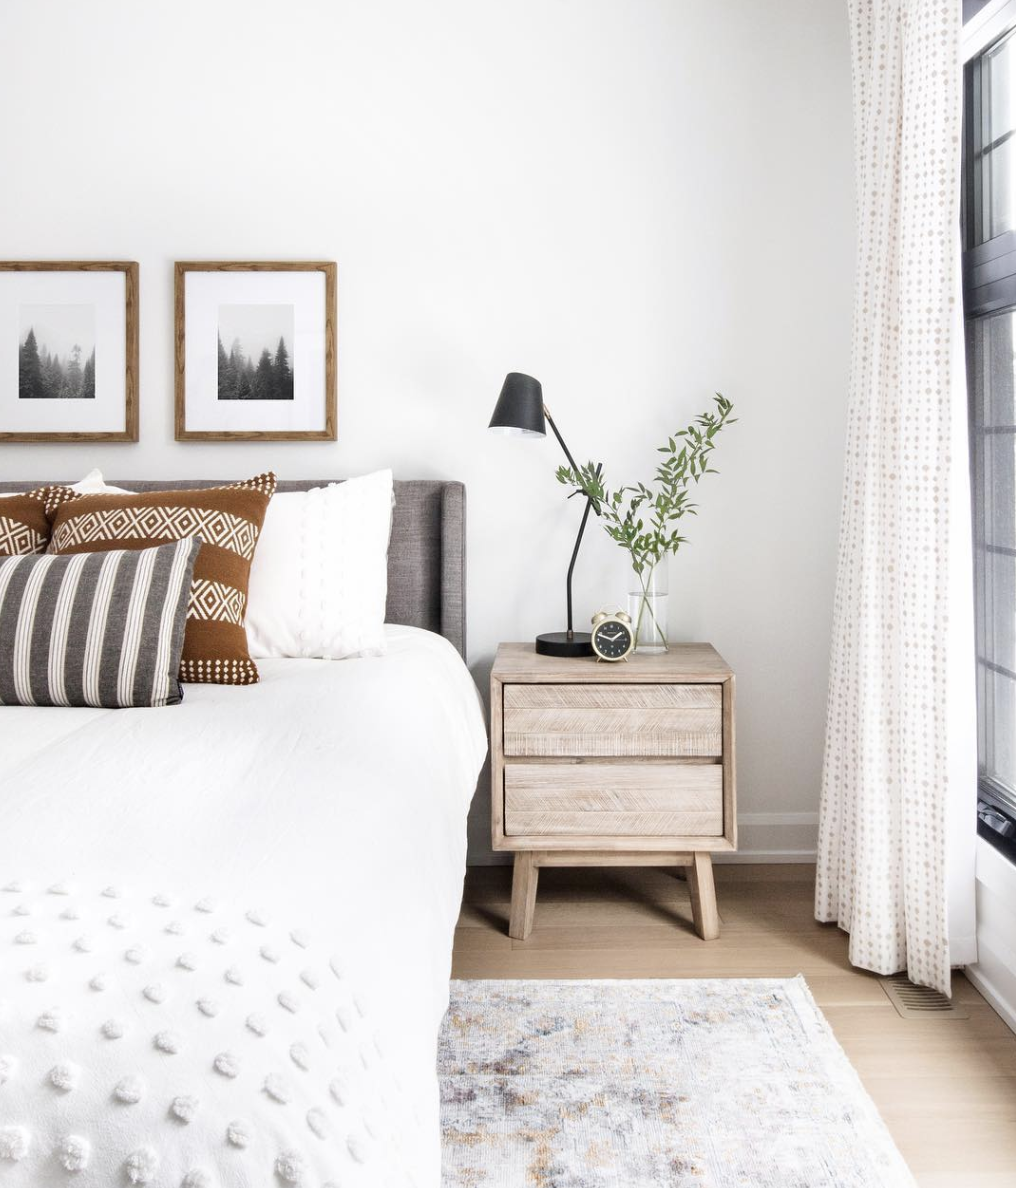 Designing the Perfect Bedside Luxury bedroom